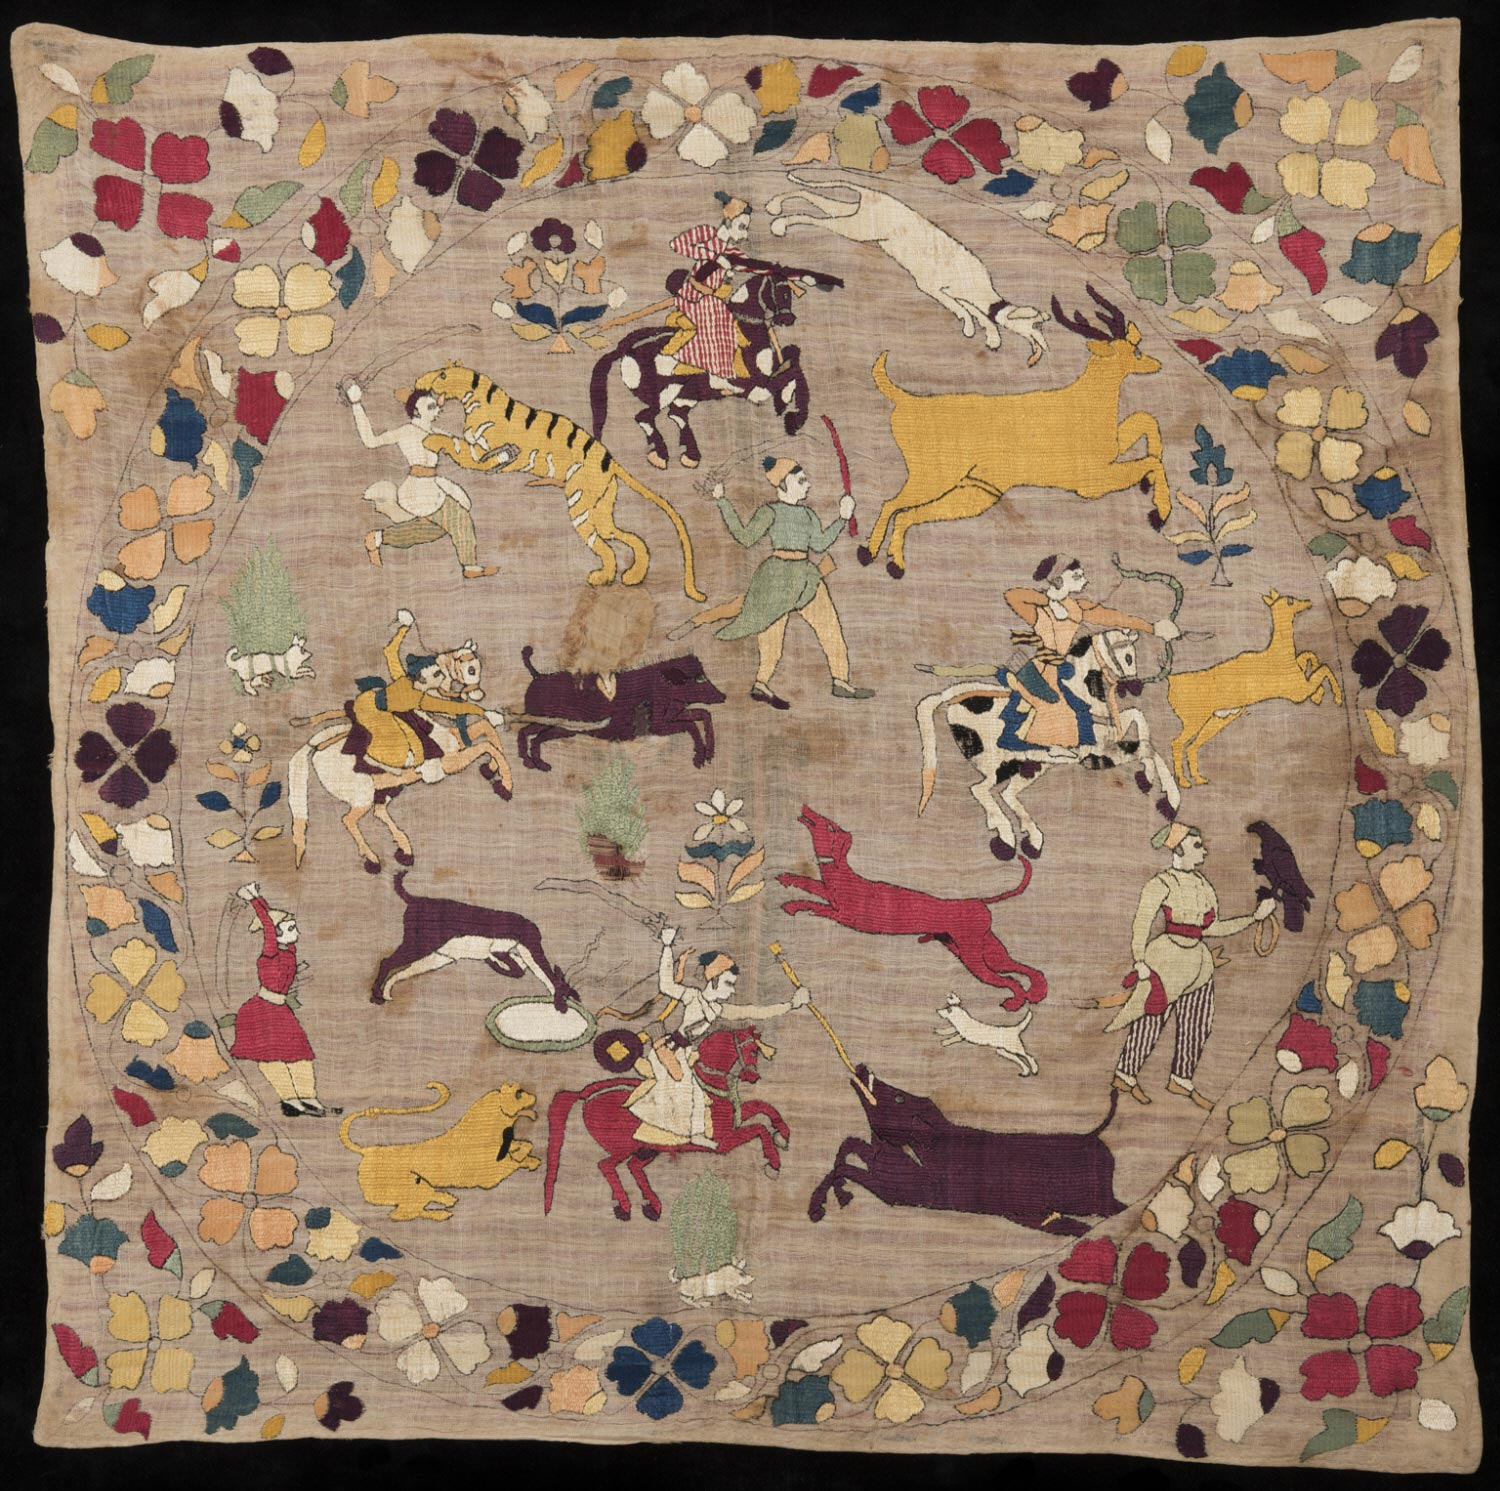 Ceremonial Cover (Rumal) with Hunting Scene